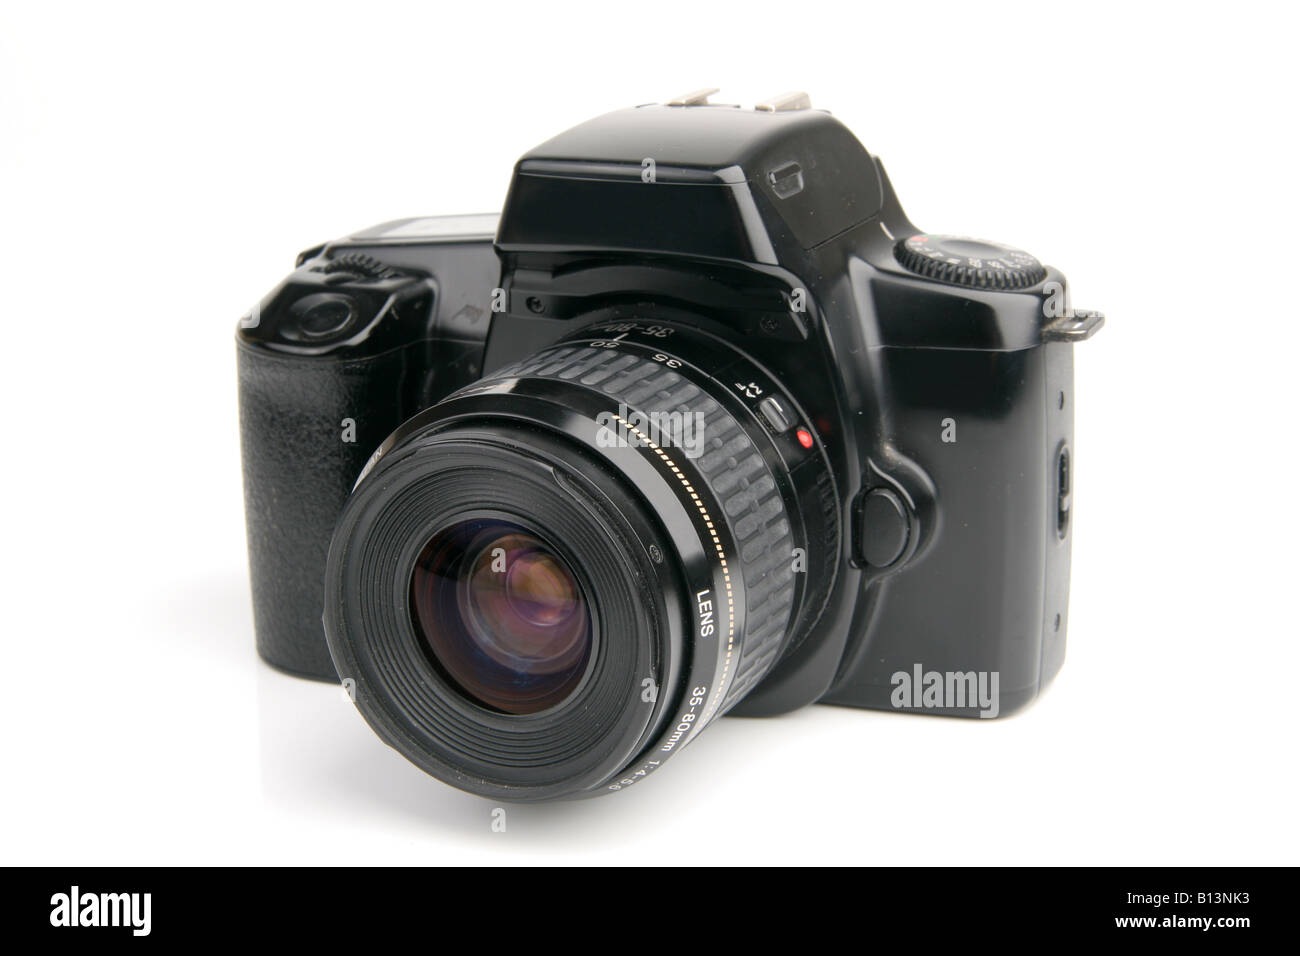 SLR camera on white - Stock Image